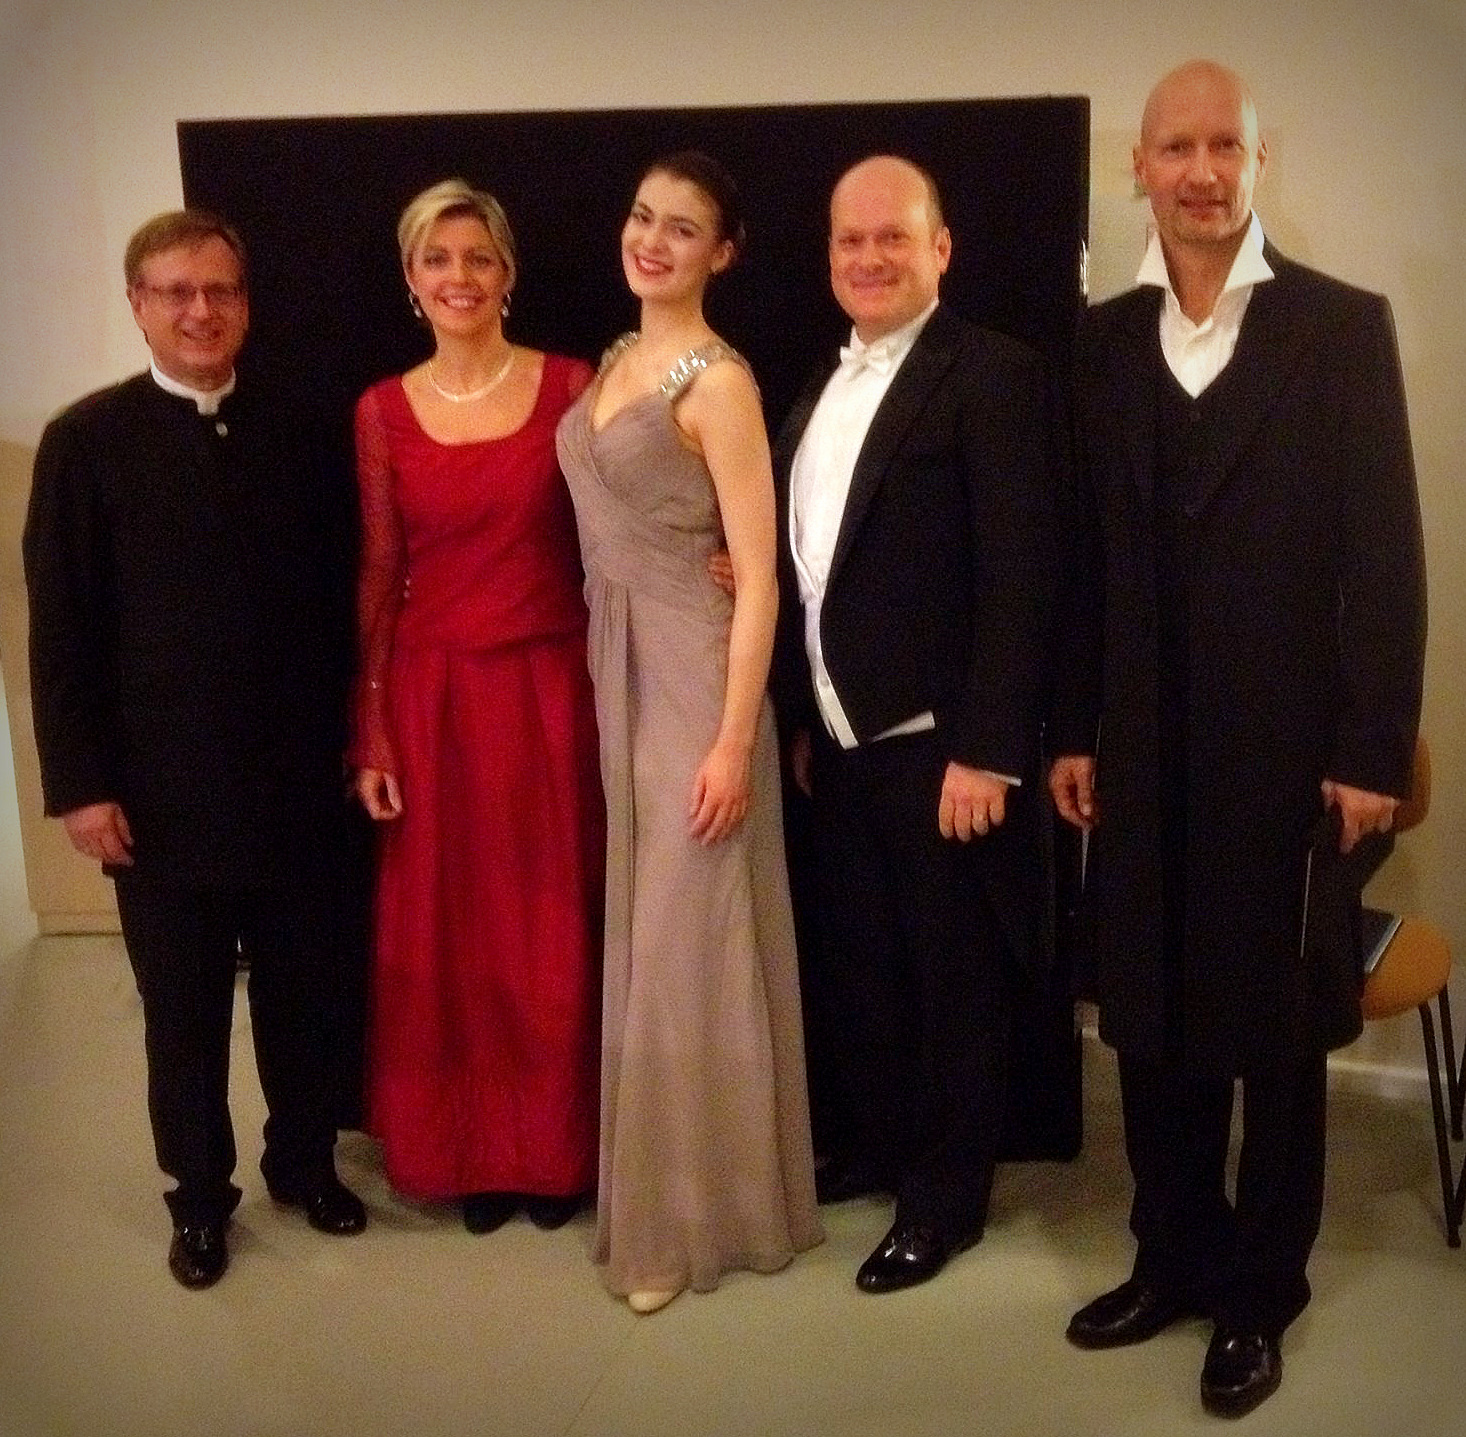 Magnificat/Bach -After our concert at Berliner Philharmonie with conductor Jörg-Peter Weigle